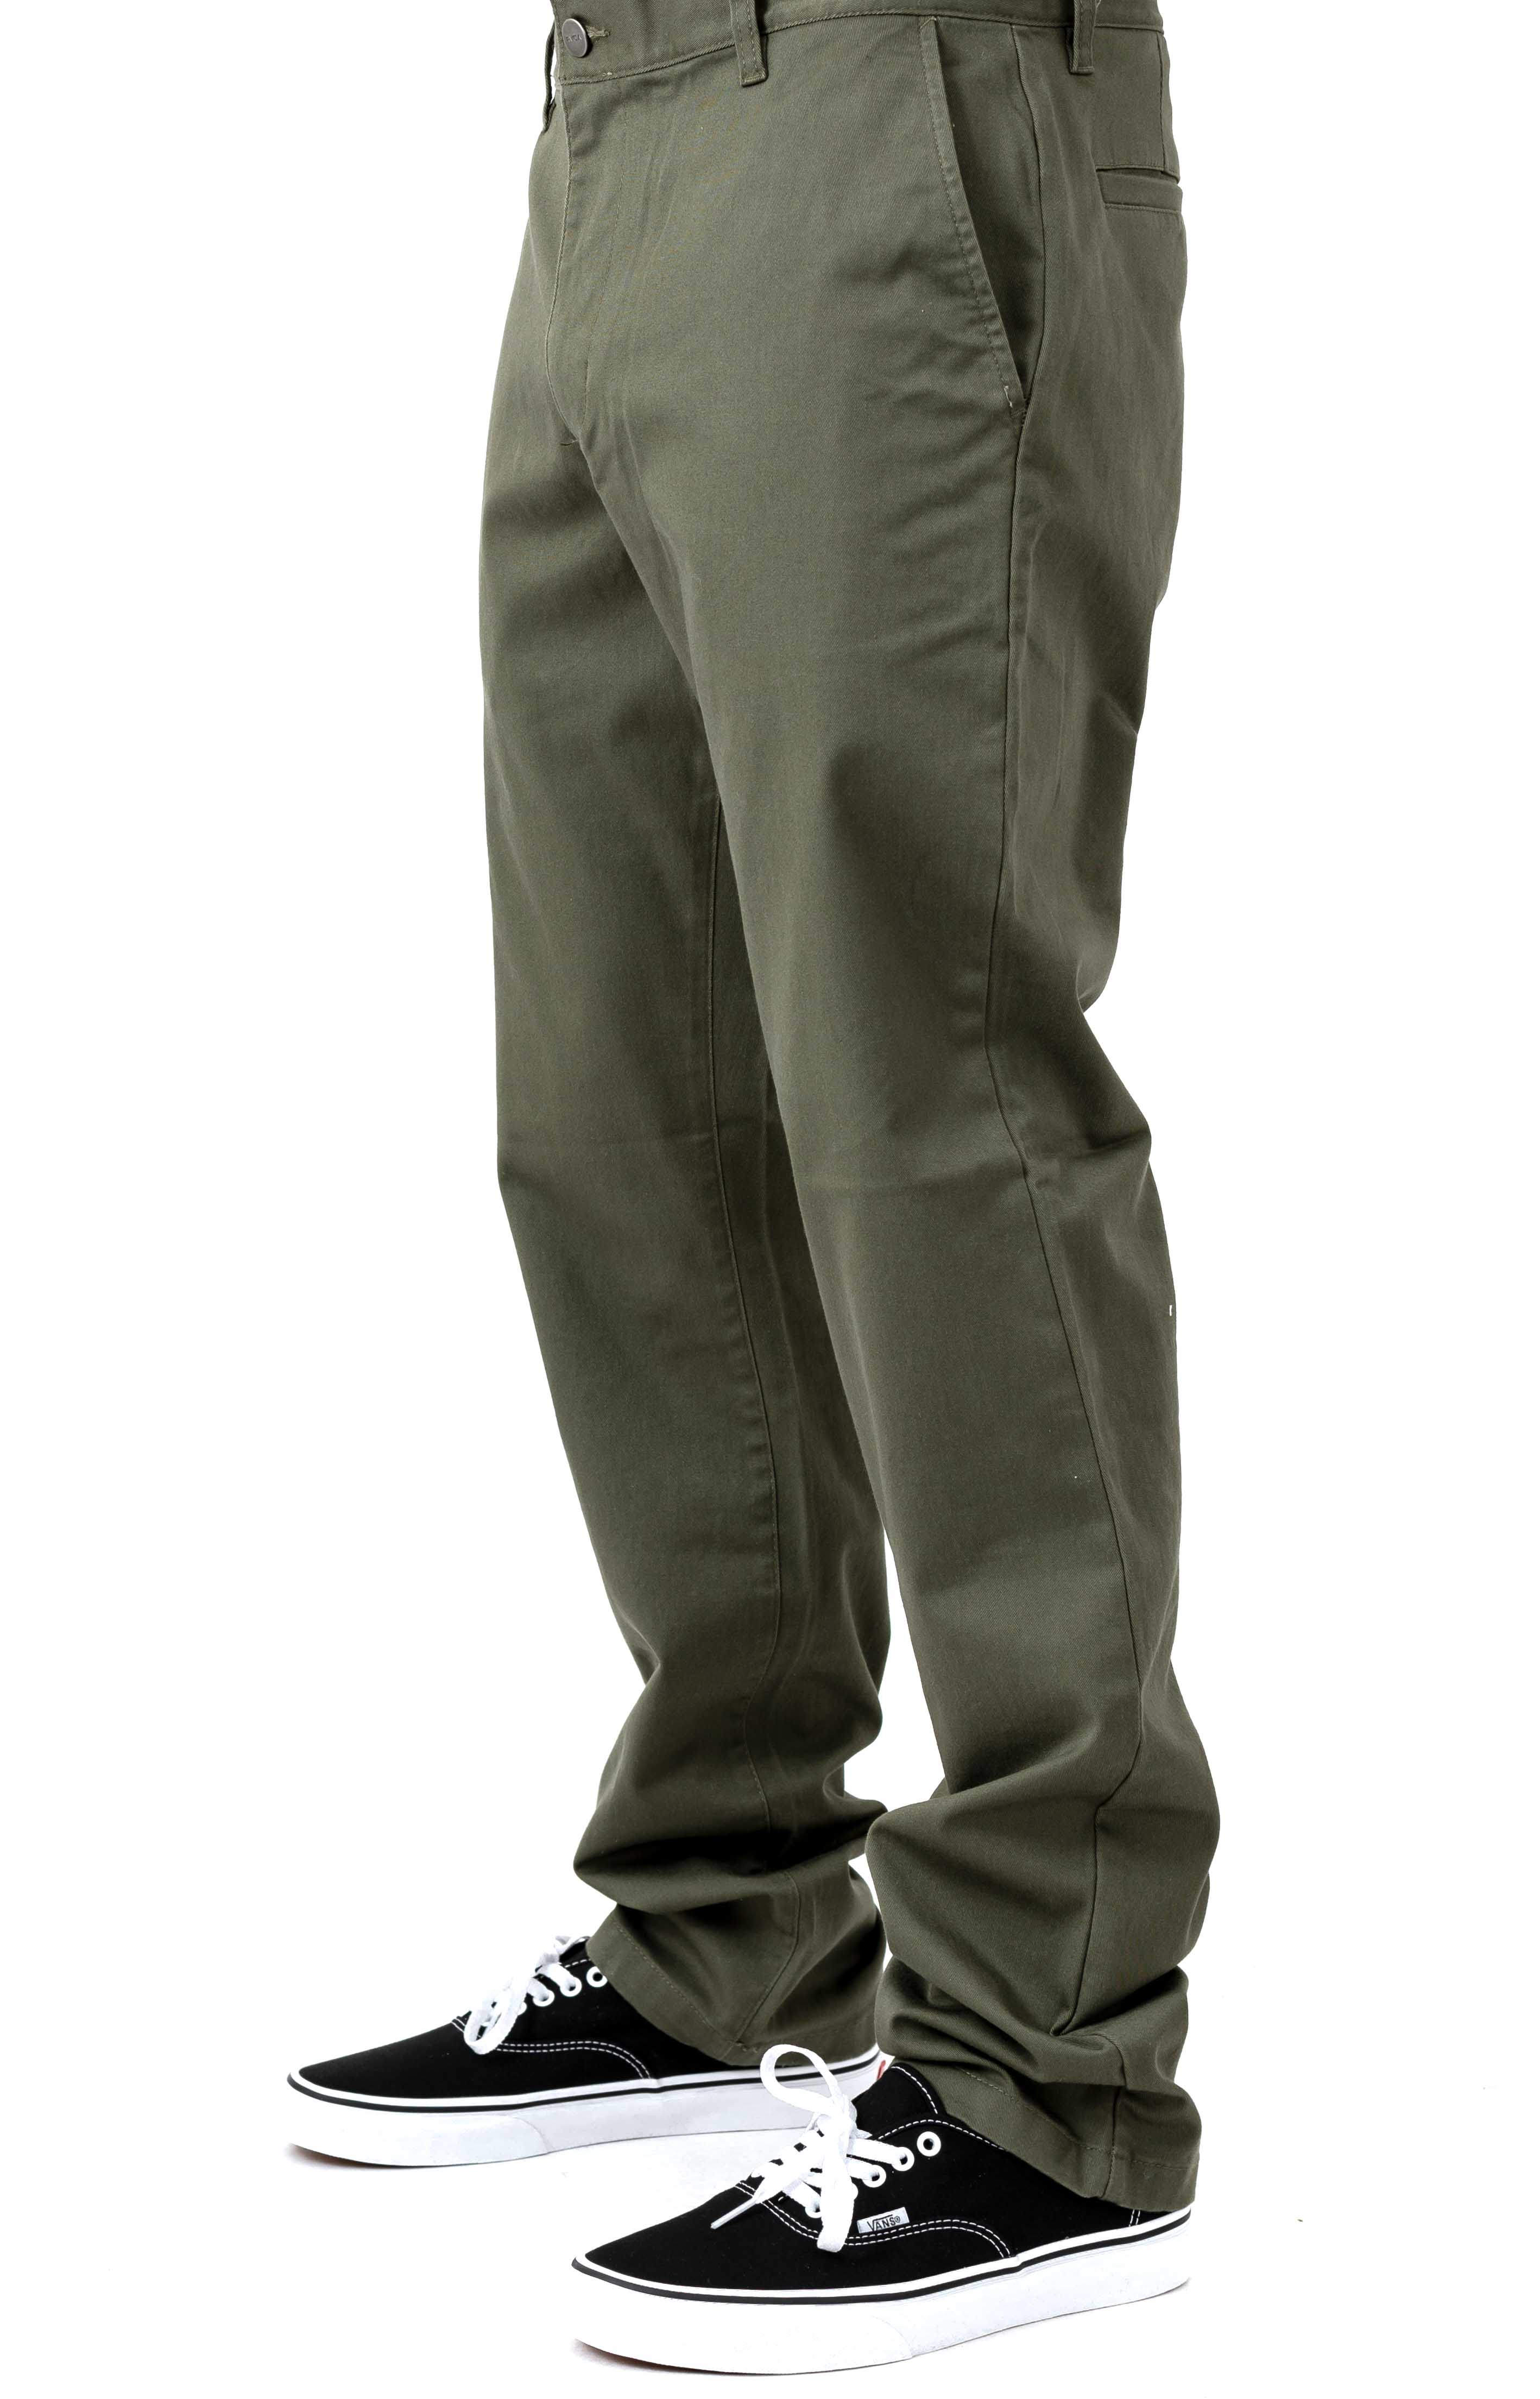 Weekend Stretch Pants - Olive